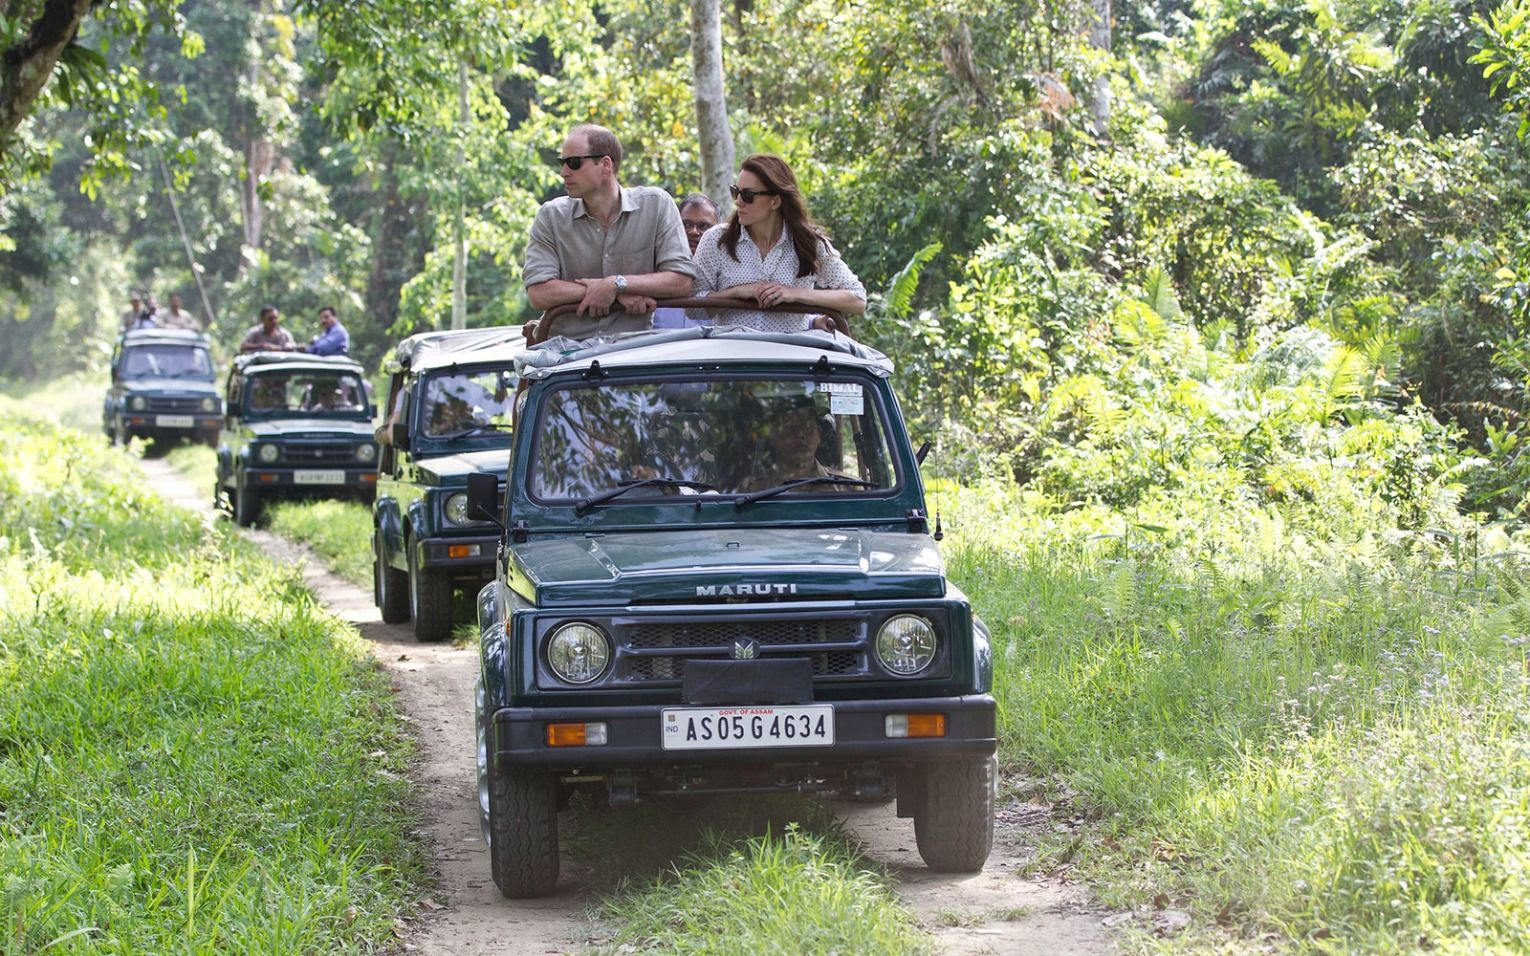 Will and Kate enjoyed a safari where they spotted rhinos and elephants.